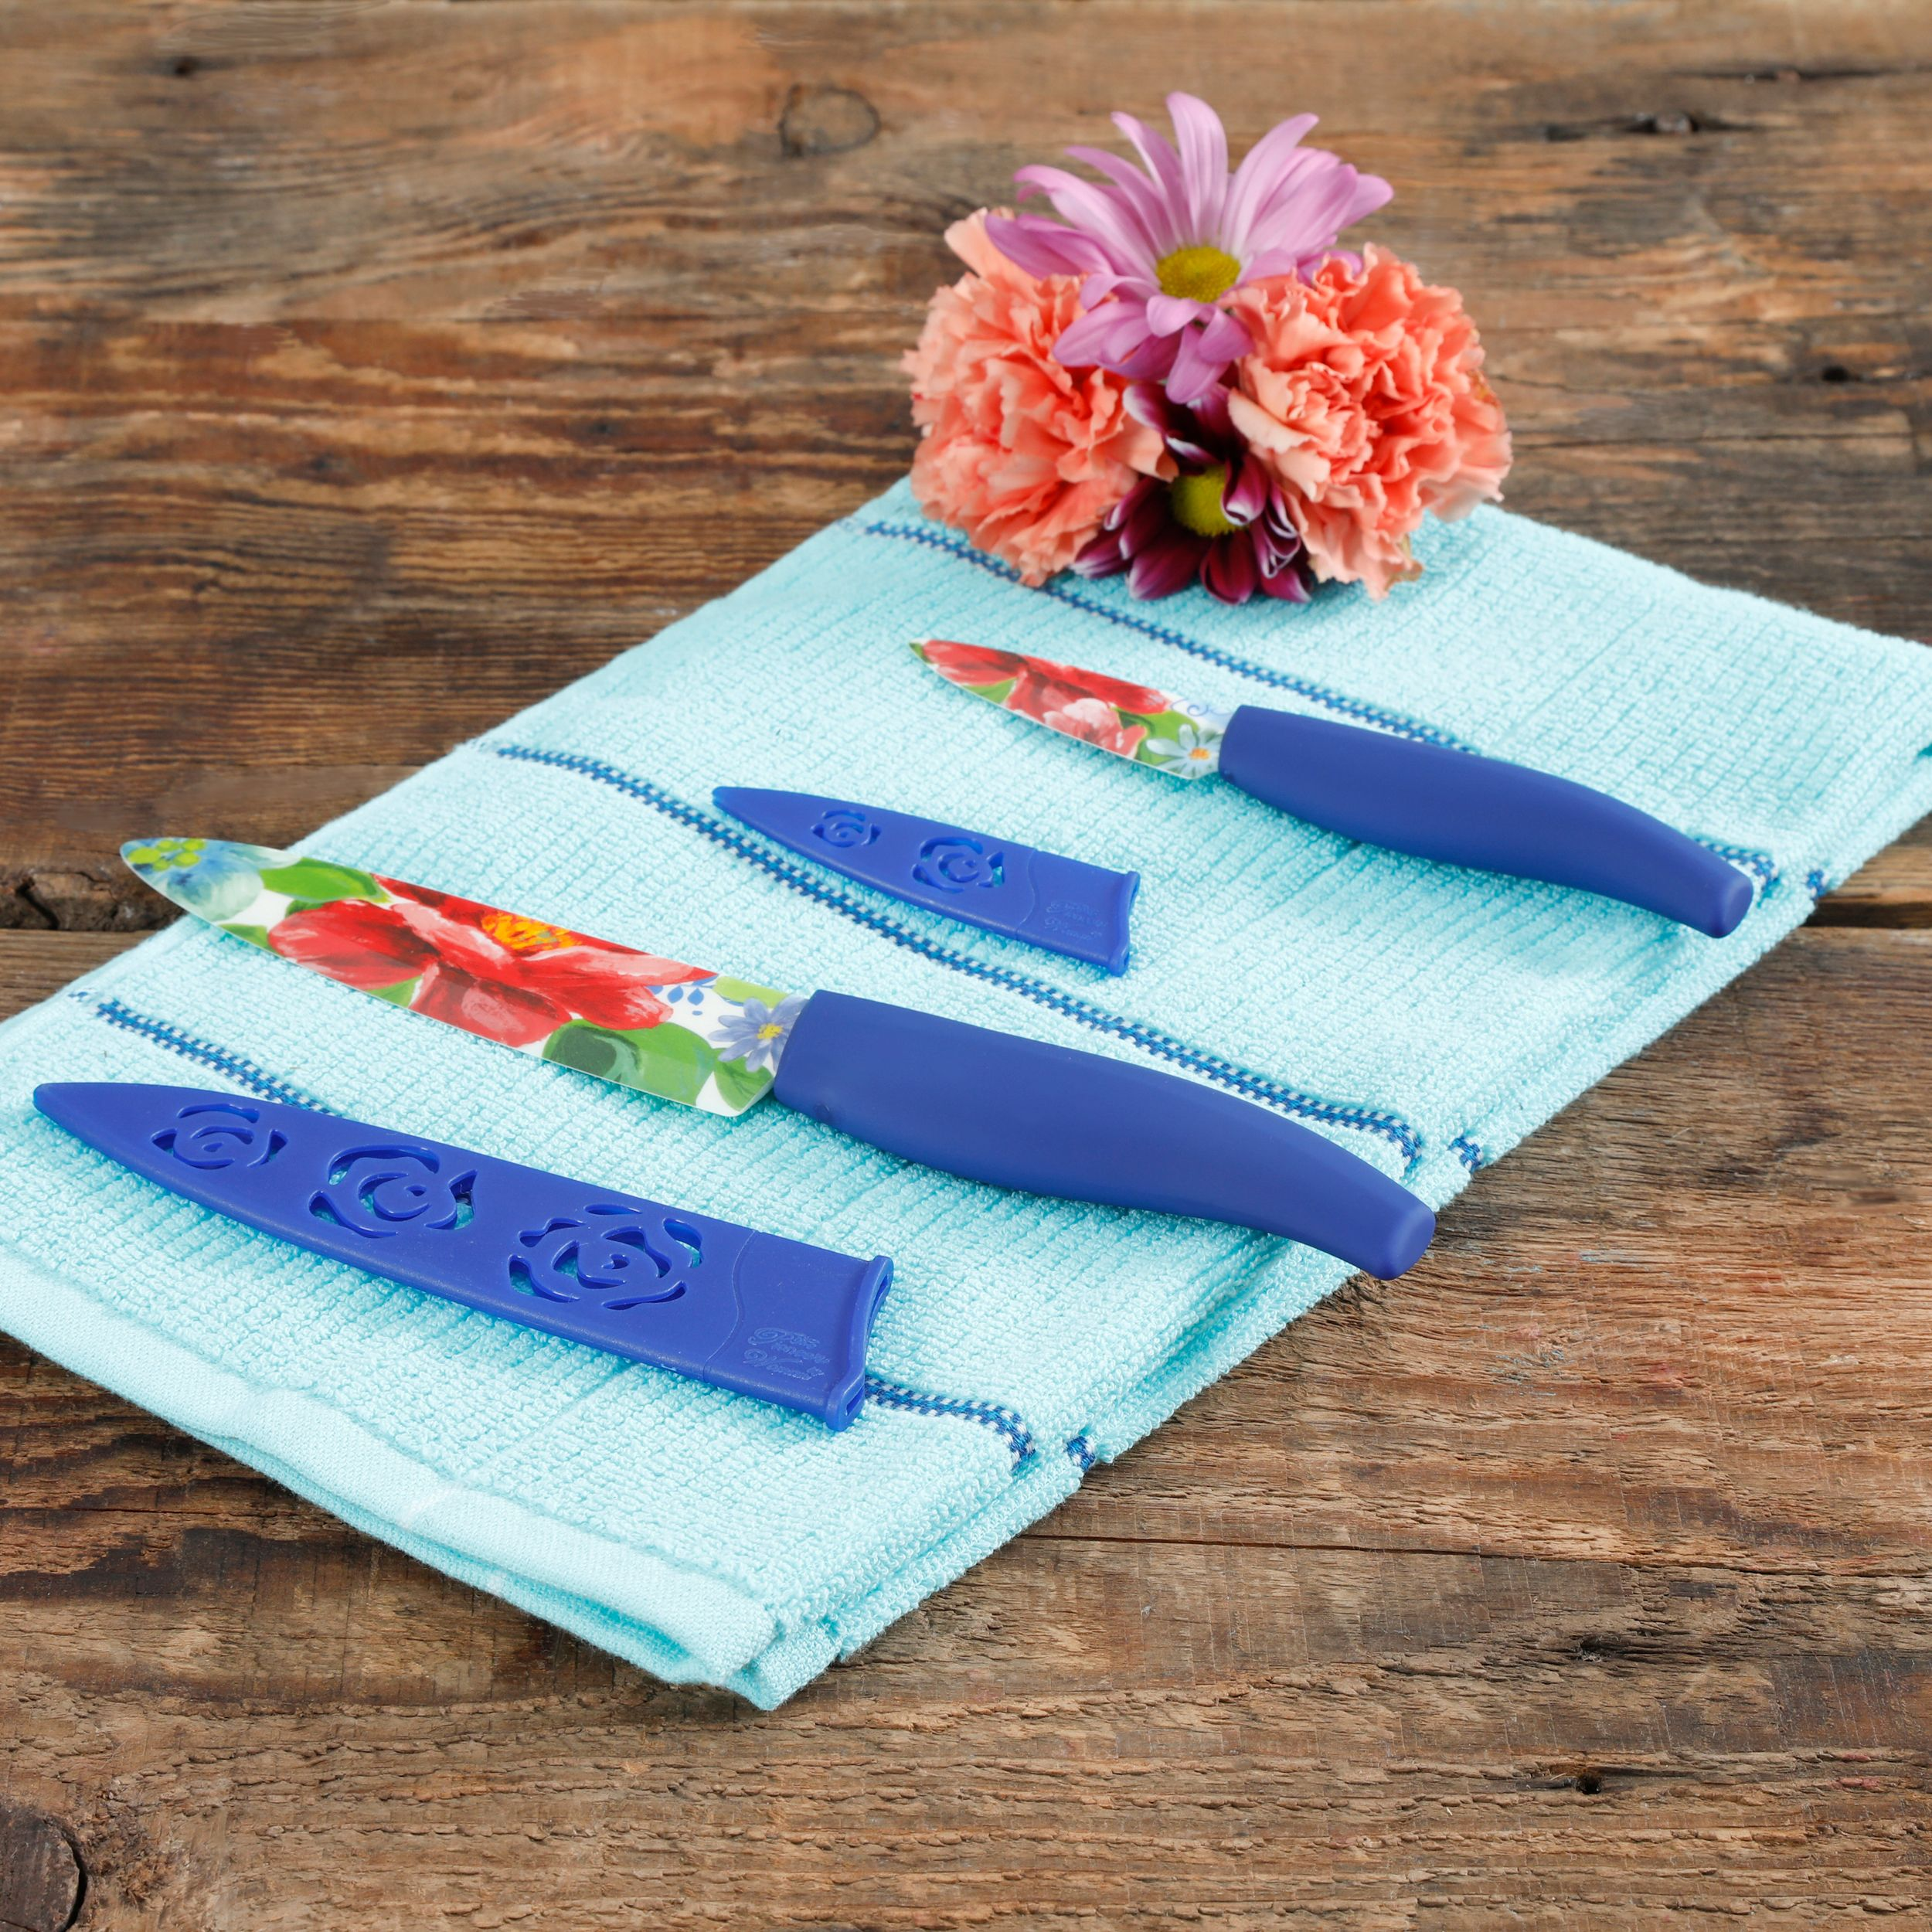 The Pioneer Woman Spring Bouquet 2-Piece Ceramic Cutlery Set